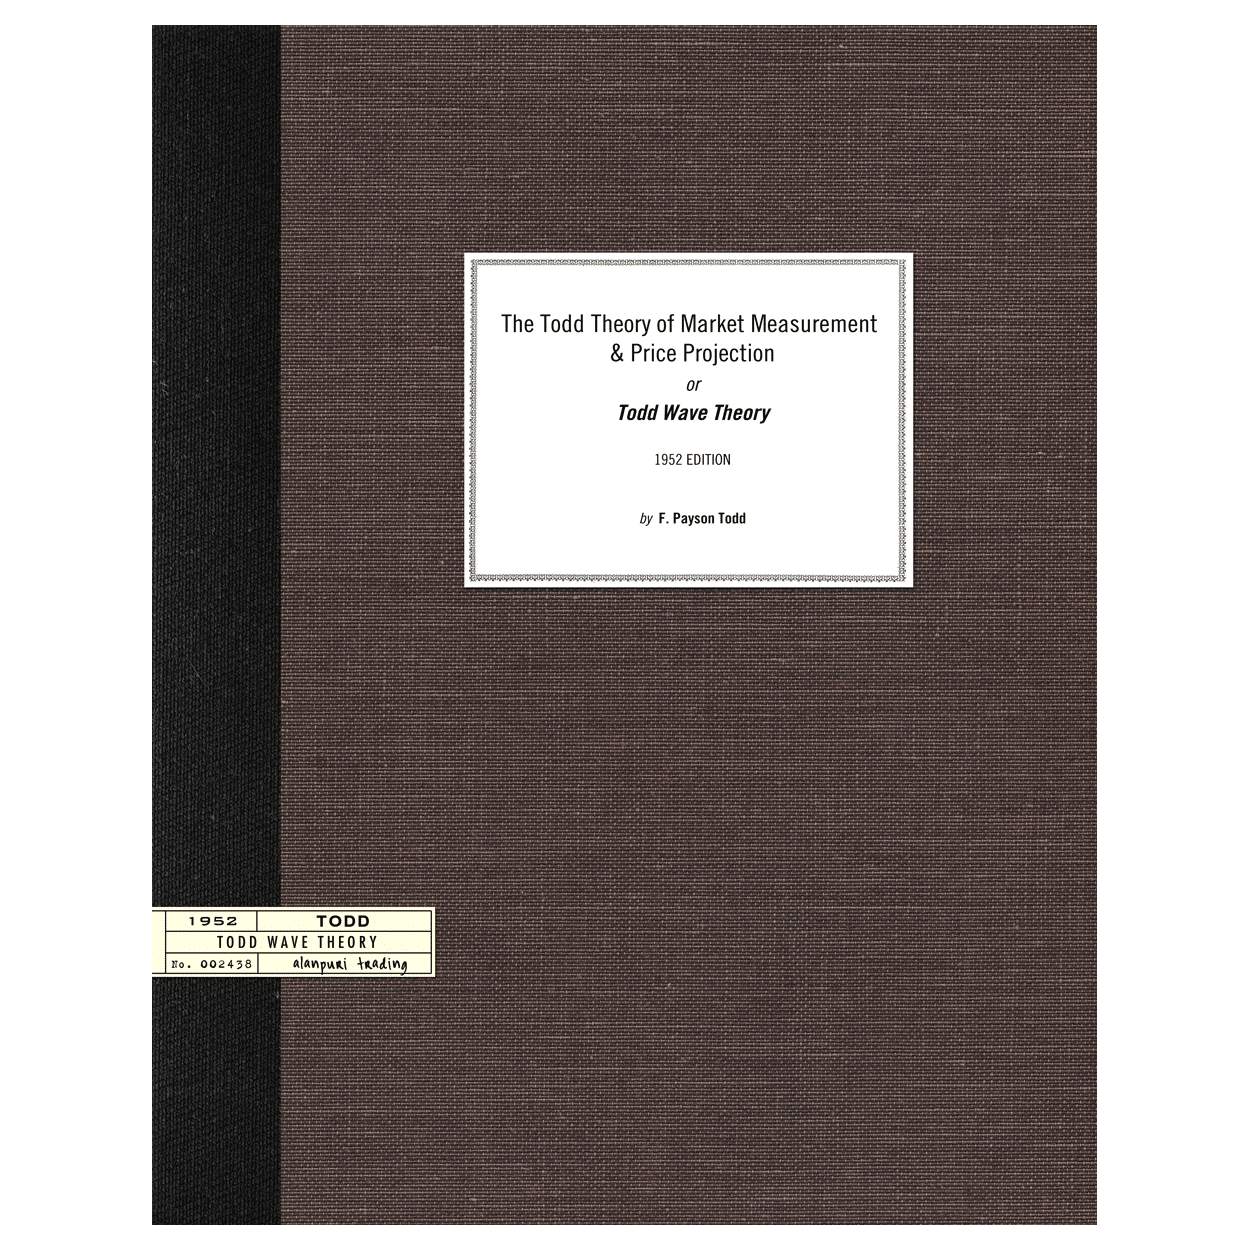 The Todd Theory of Market Measurement and Price Projection (1952) by F. Payson Todd